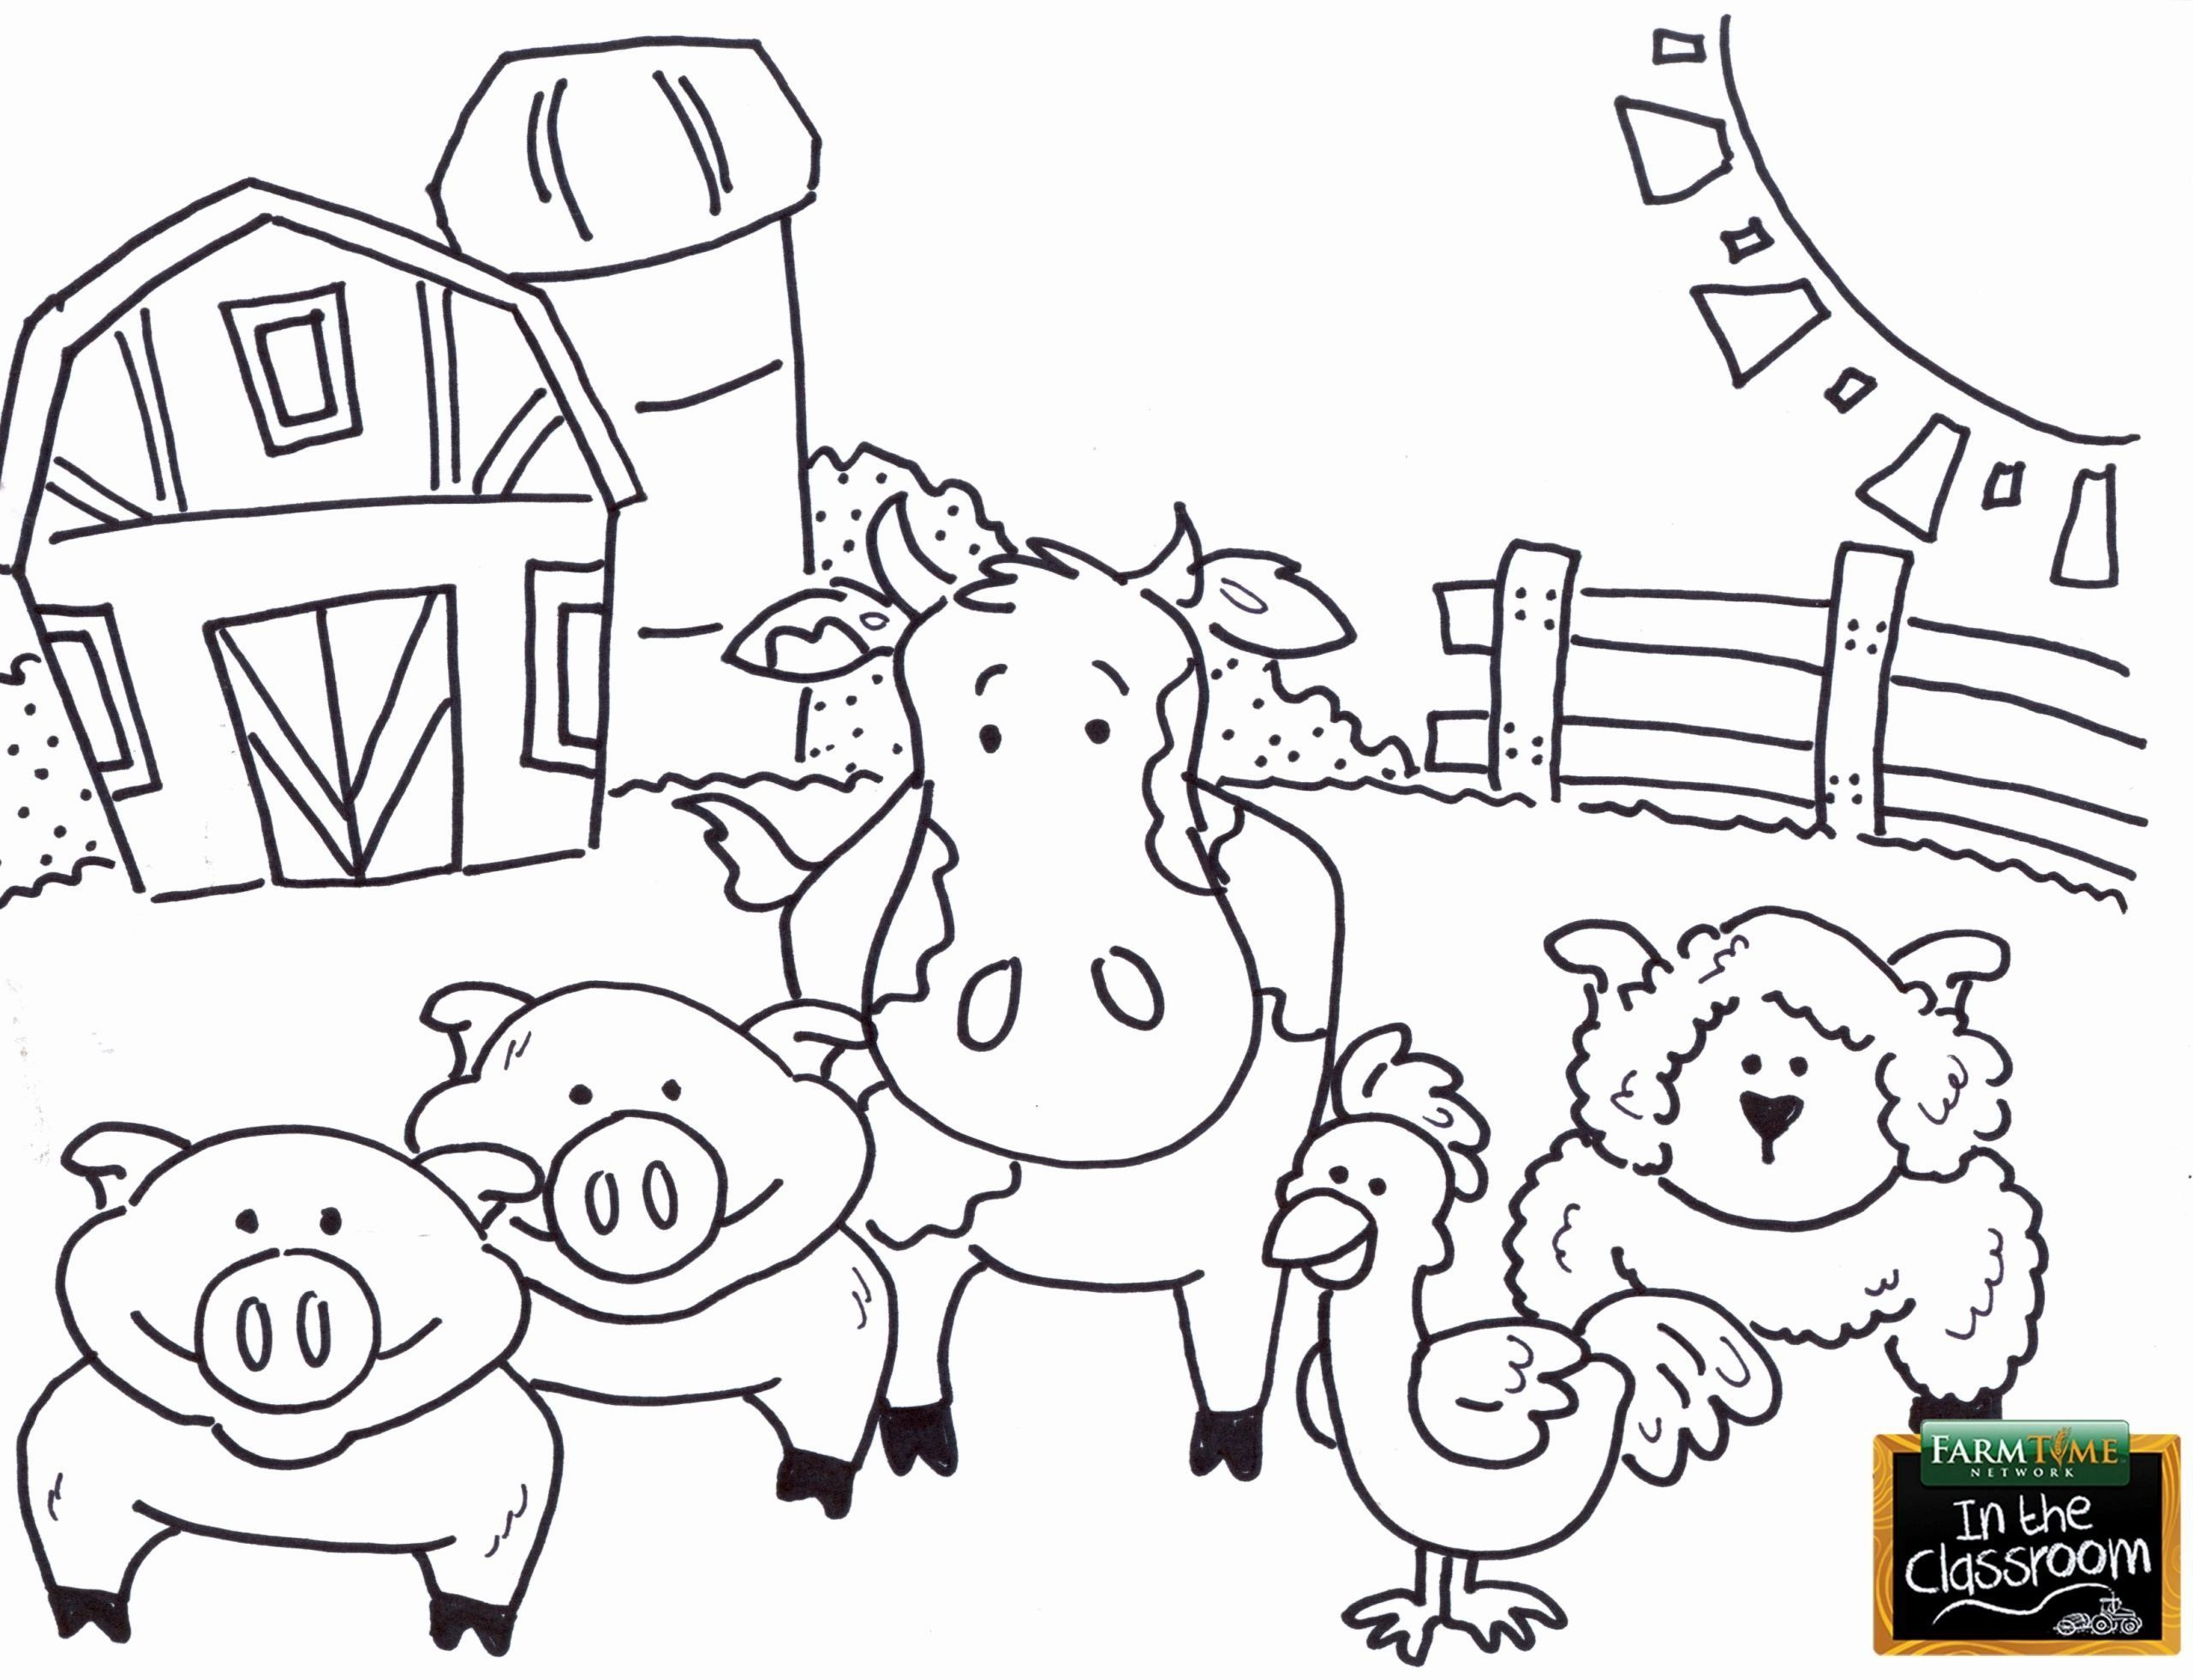 Printable Coloring Pages Animals Printable Coloring Pages Farm Animals In 2020 Farm Animal Coloring Pages Farm Coloring Pages Coloring Pages